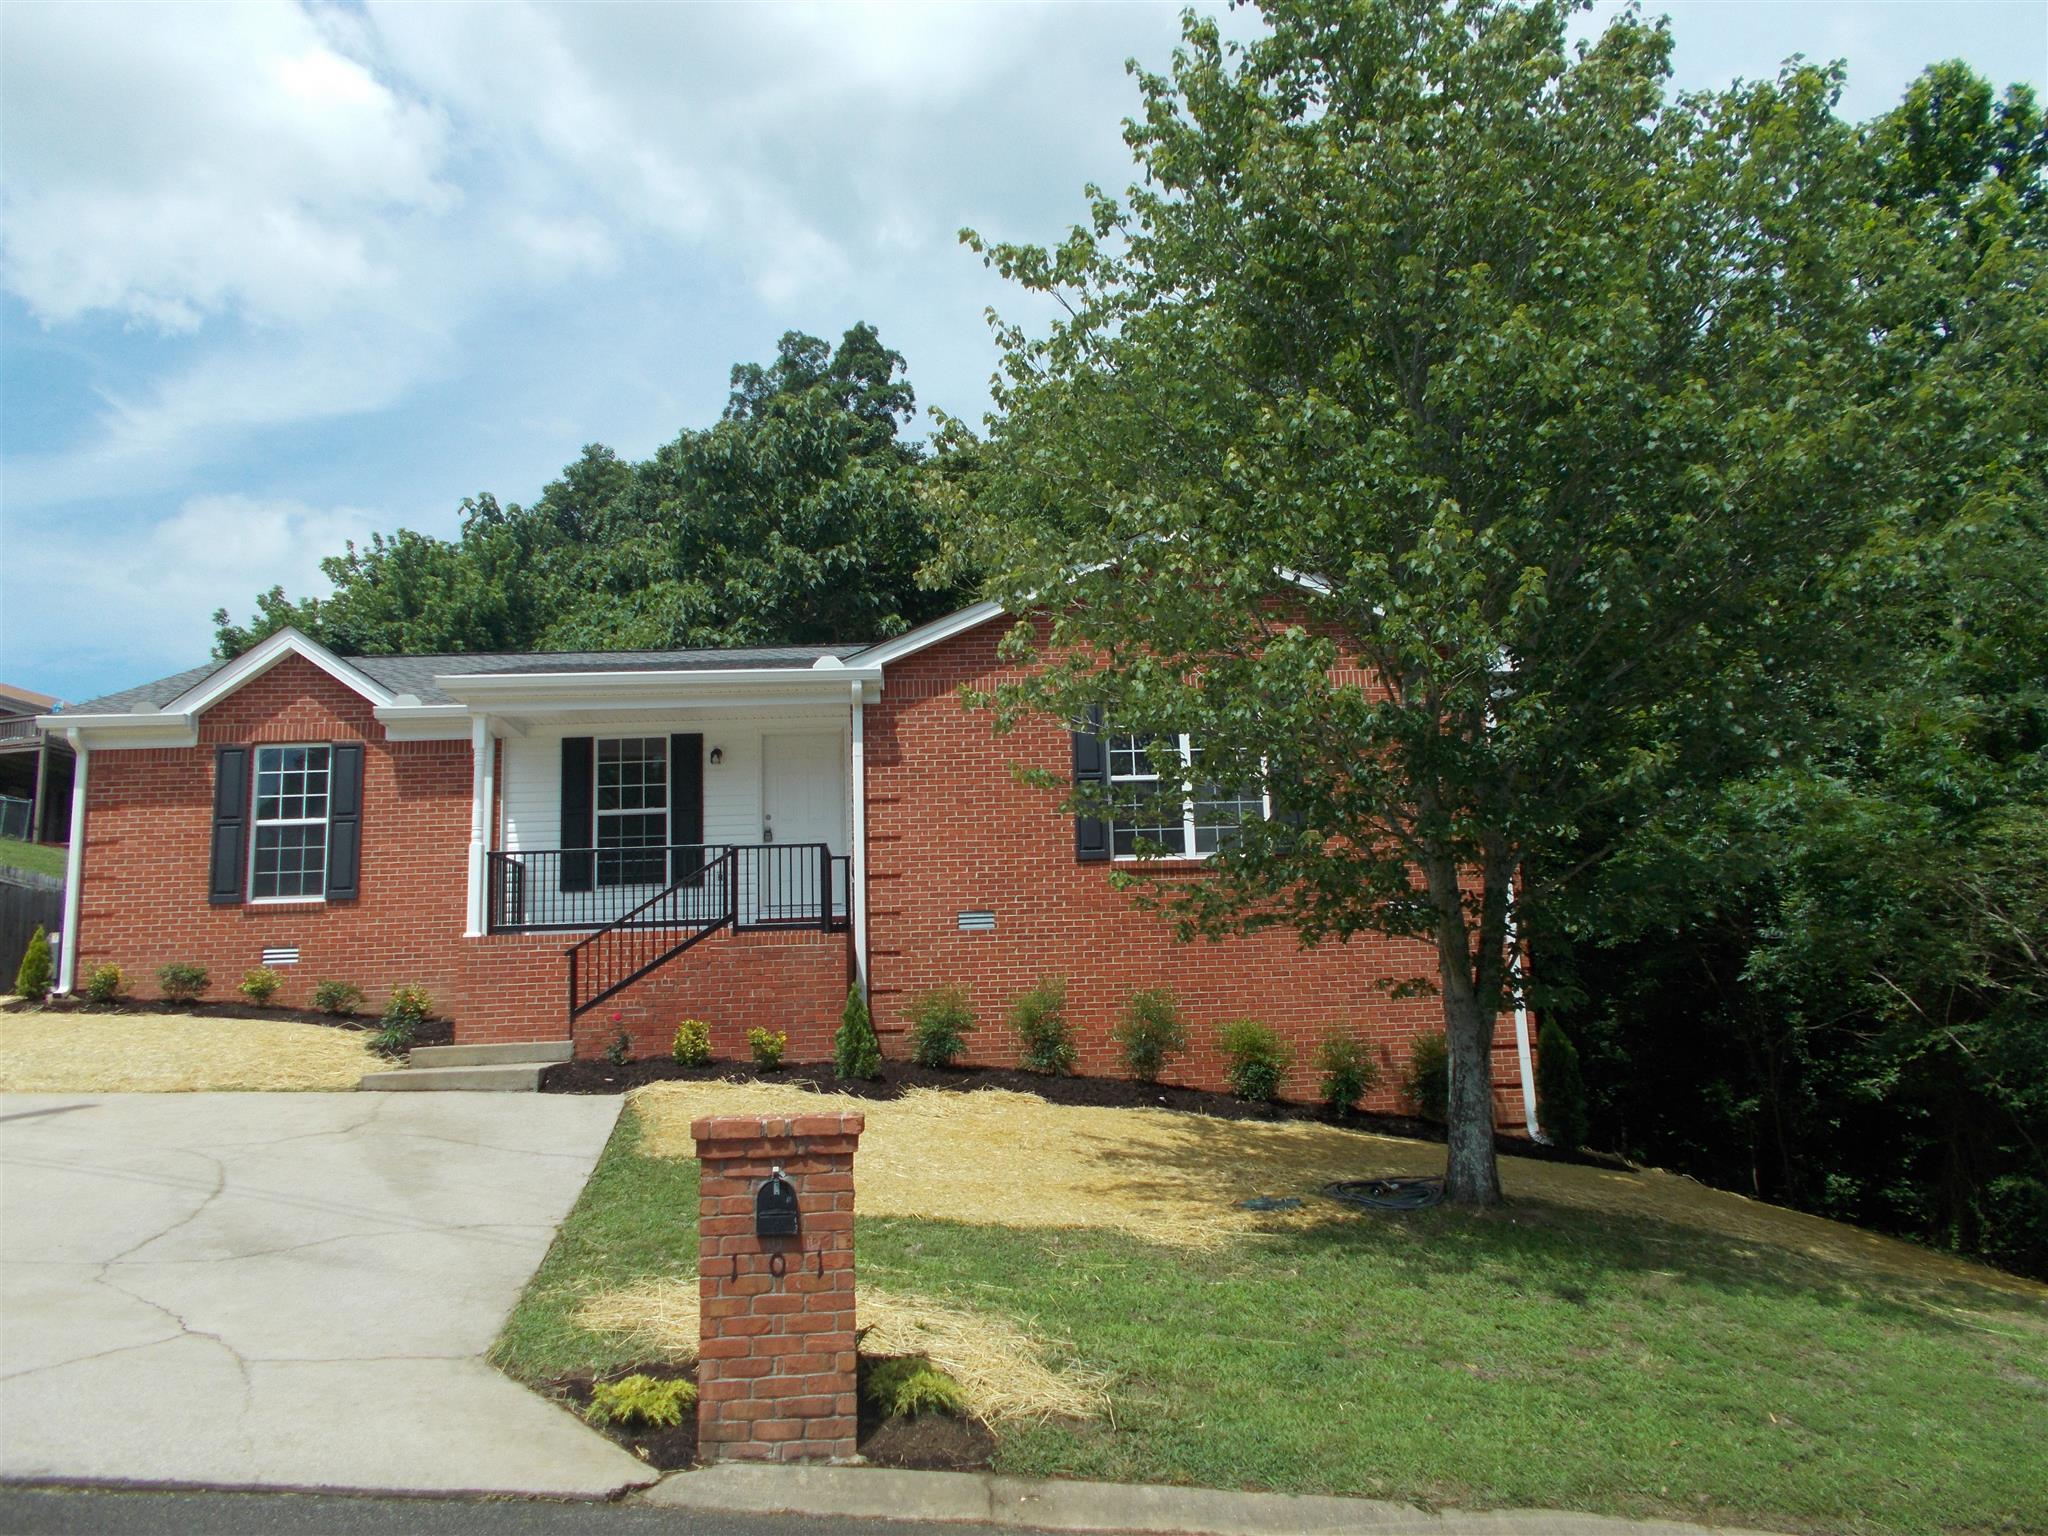 101 Nimitz Ci, Ashland City, TN 37015 - Ashland City, TN real estate listing